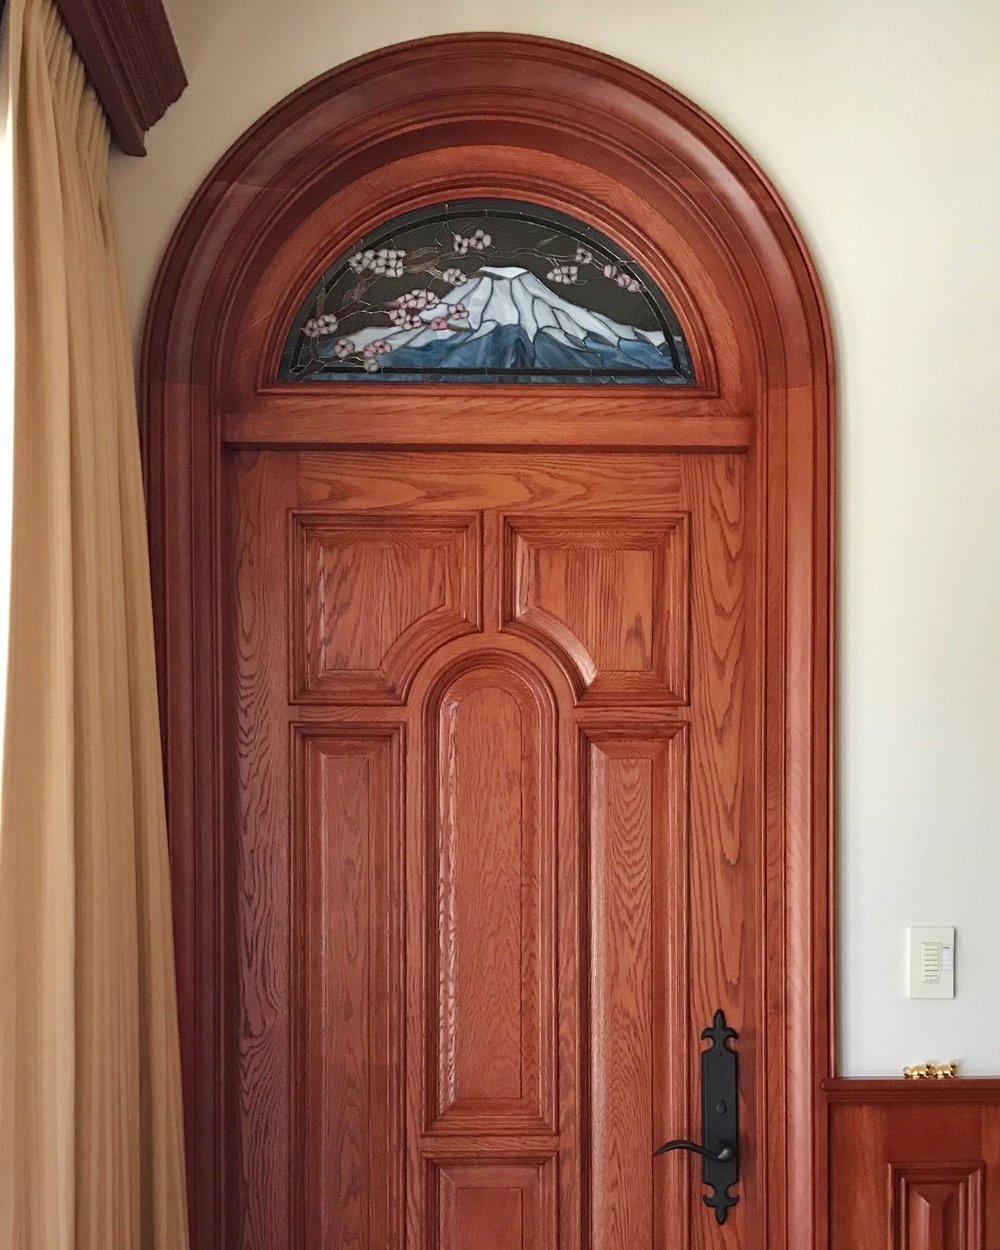 mt fuji stained glass copper foil design spectrum glass transom solid wood door molding custom arch art glass legacy glass studios california portola valley bay area.jpg